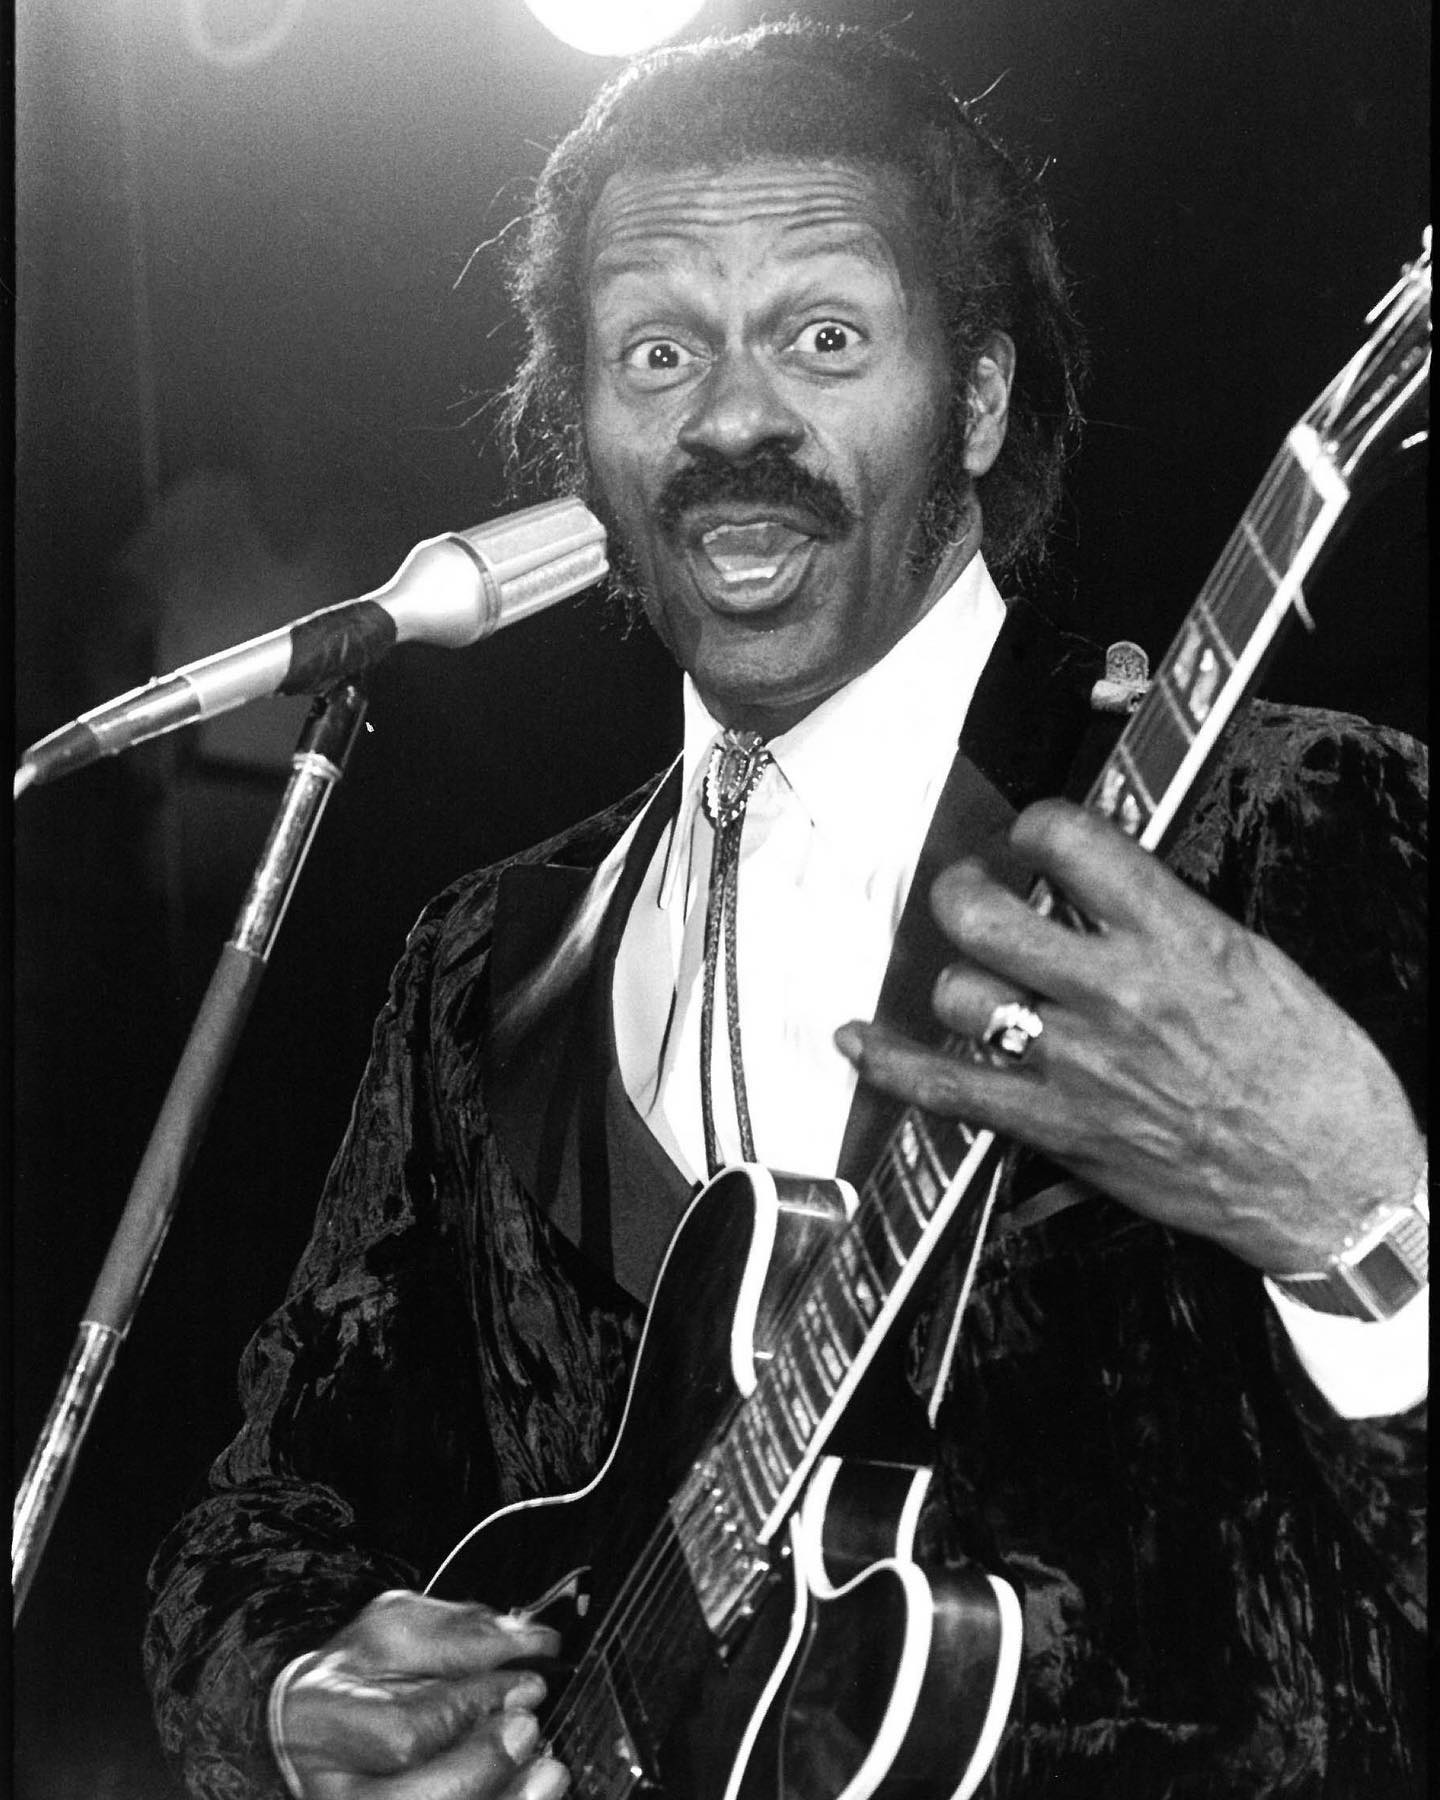 HBD 🥳 to the late Chuck Berry! This music icon, who passed in 2017, would have been 94 today. Photos of Berry in performance at Studio 54 by Alan Tannenbaum @soho_blues 🎸  © Alan Tannenbaum/MUUS Collection